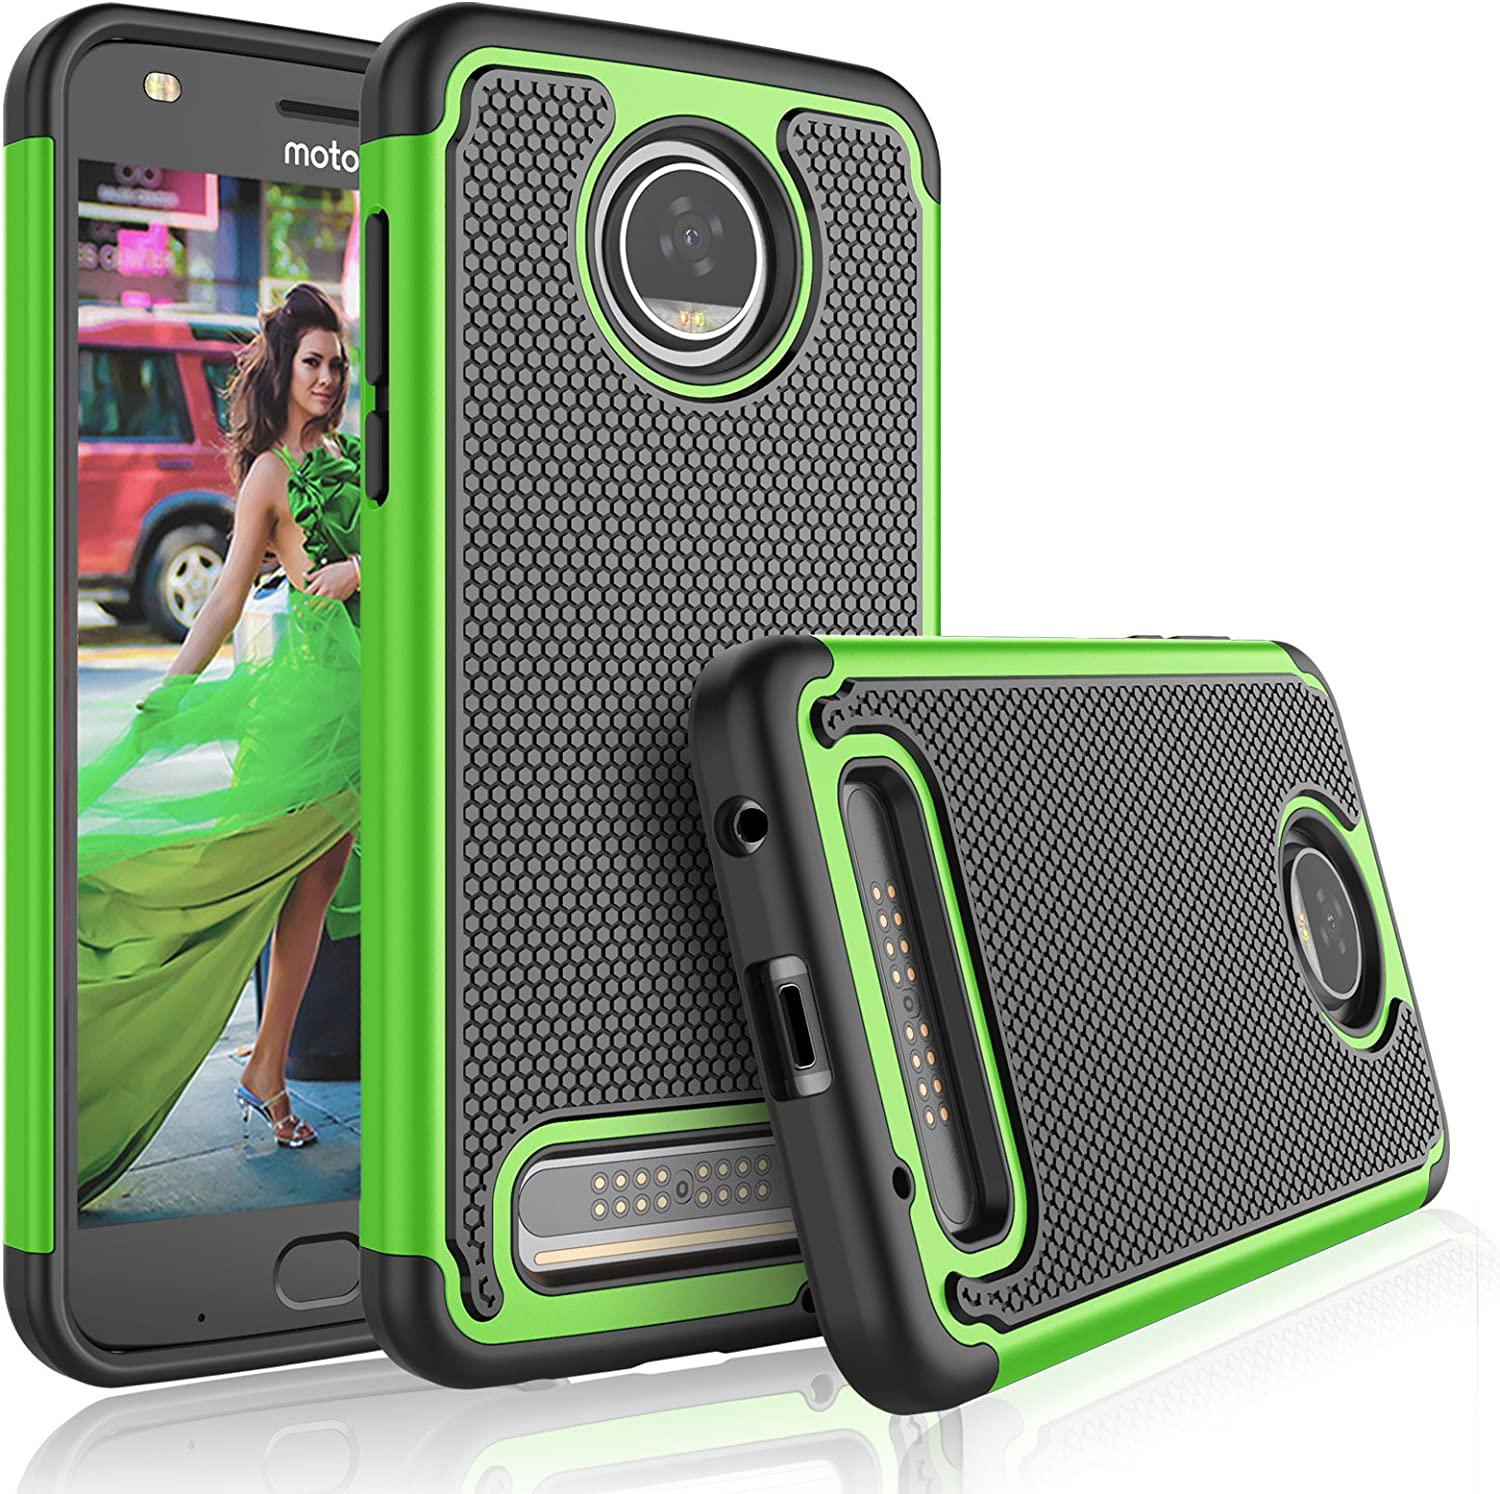 Tekcoo Moto Z2 Play Case, Tekcoo Motorola Z2 Play Droid Cute Case, [Tmajor] Shock Absorbing [Green] Rubber Silicone & Plastic Scratch Resistant Bumper Grip Hard Cases for Moto Z Play 2017 Cover